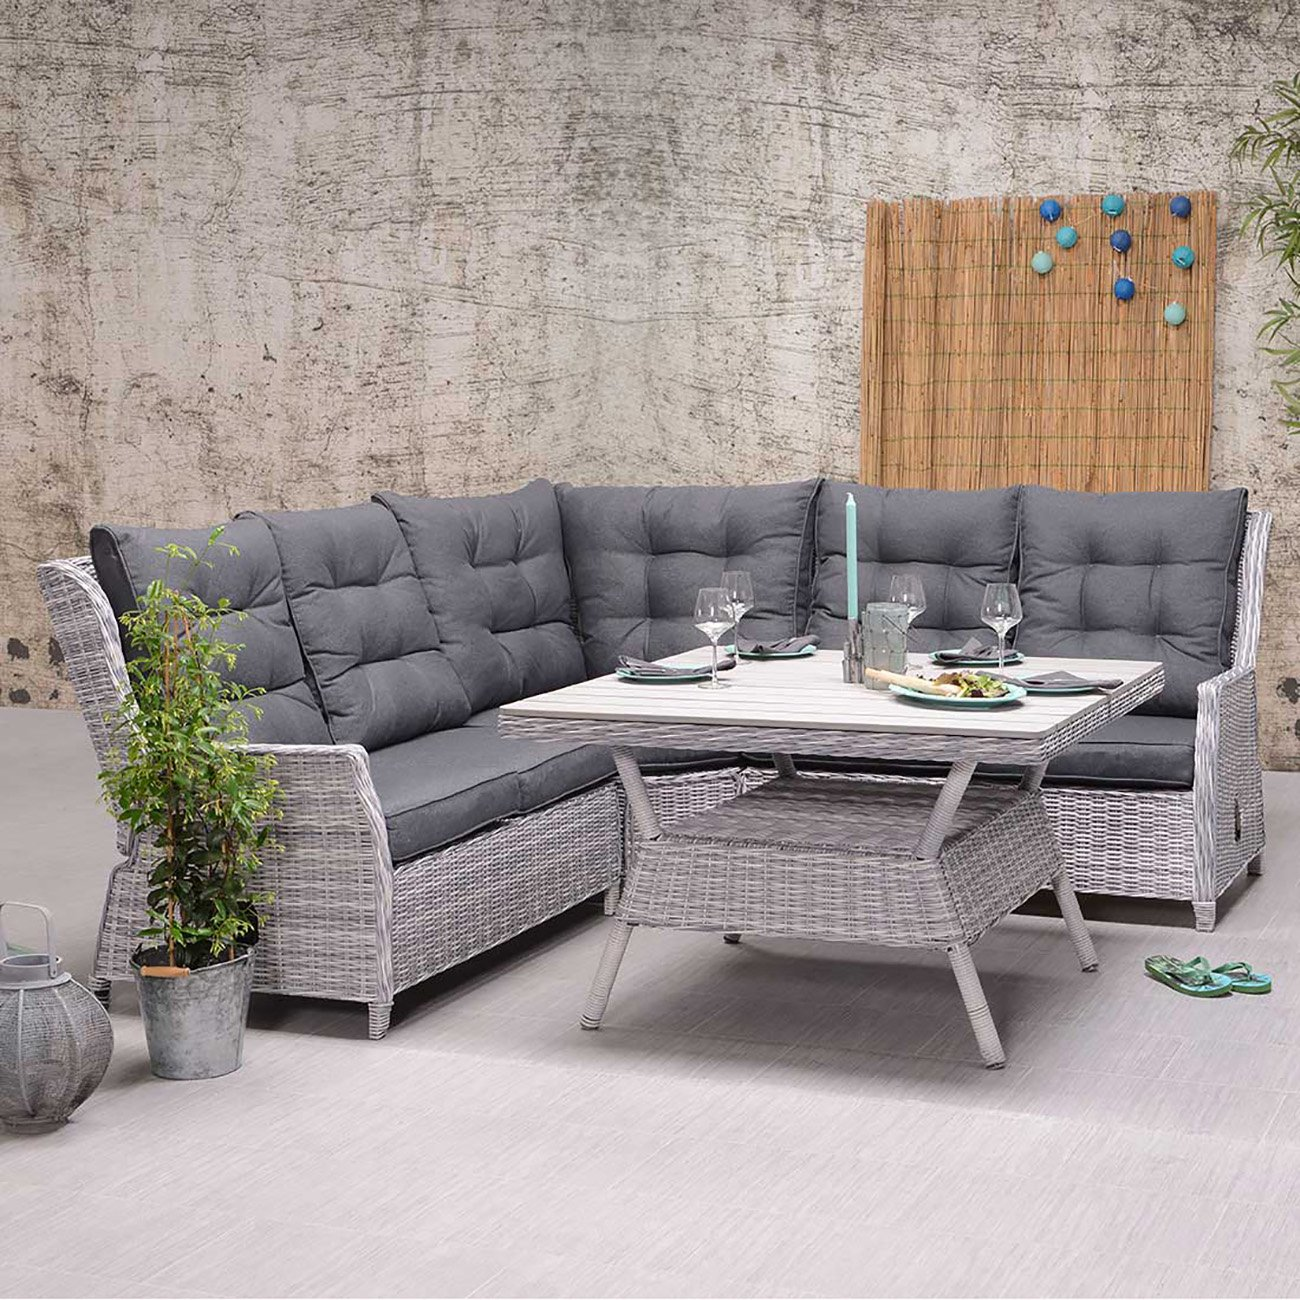 outliv dunham dininglounge 4tlg geflecht cloudy grey lounge set g nstig online kaufen. Black Bedroom Furniture Sets. Home Design Ideas